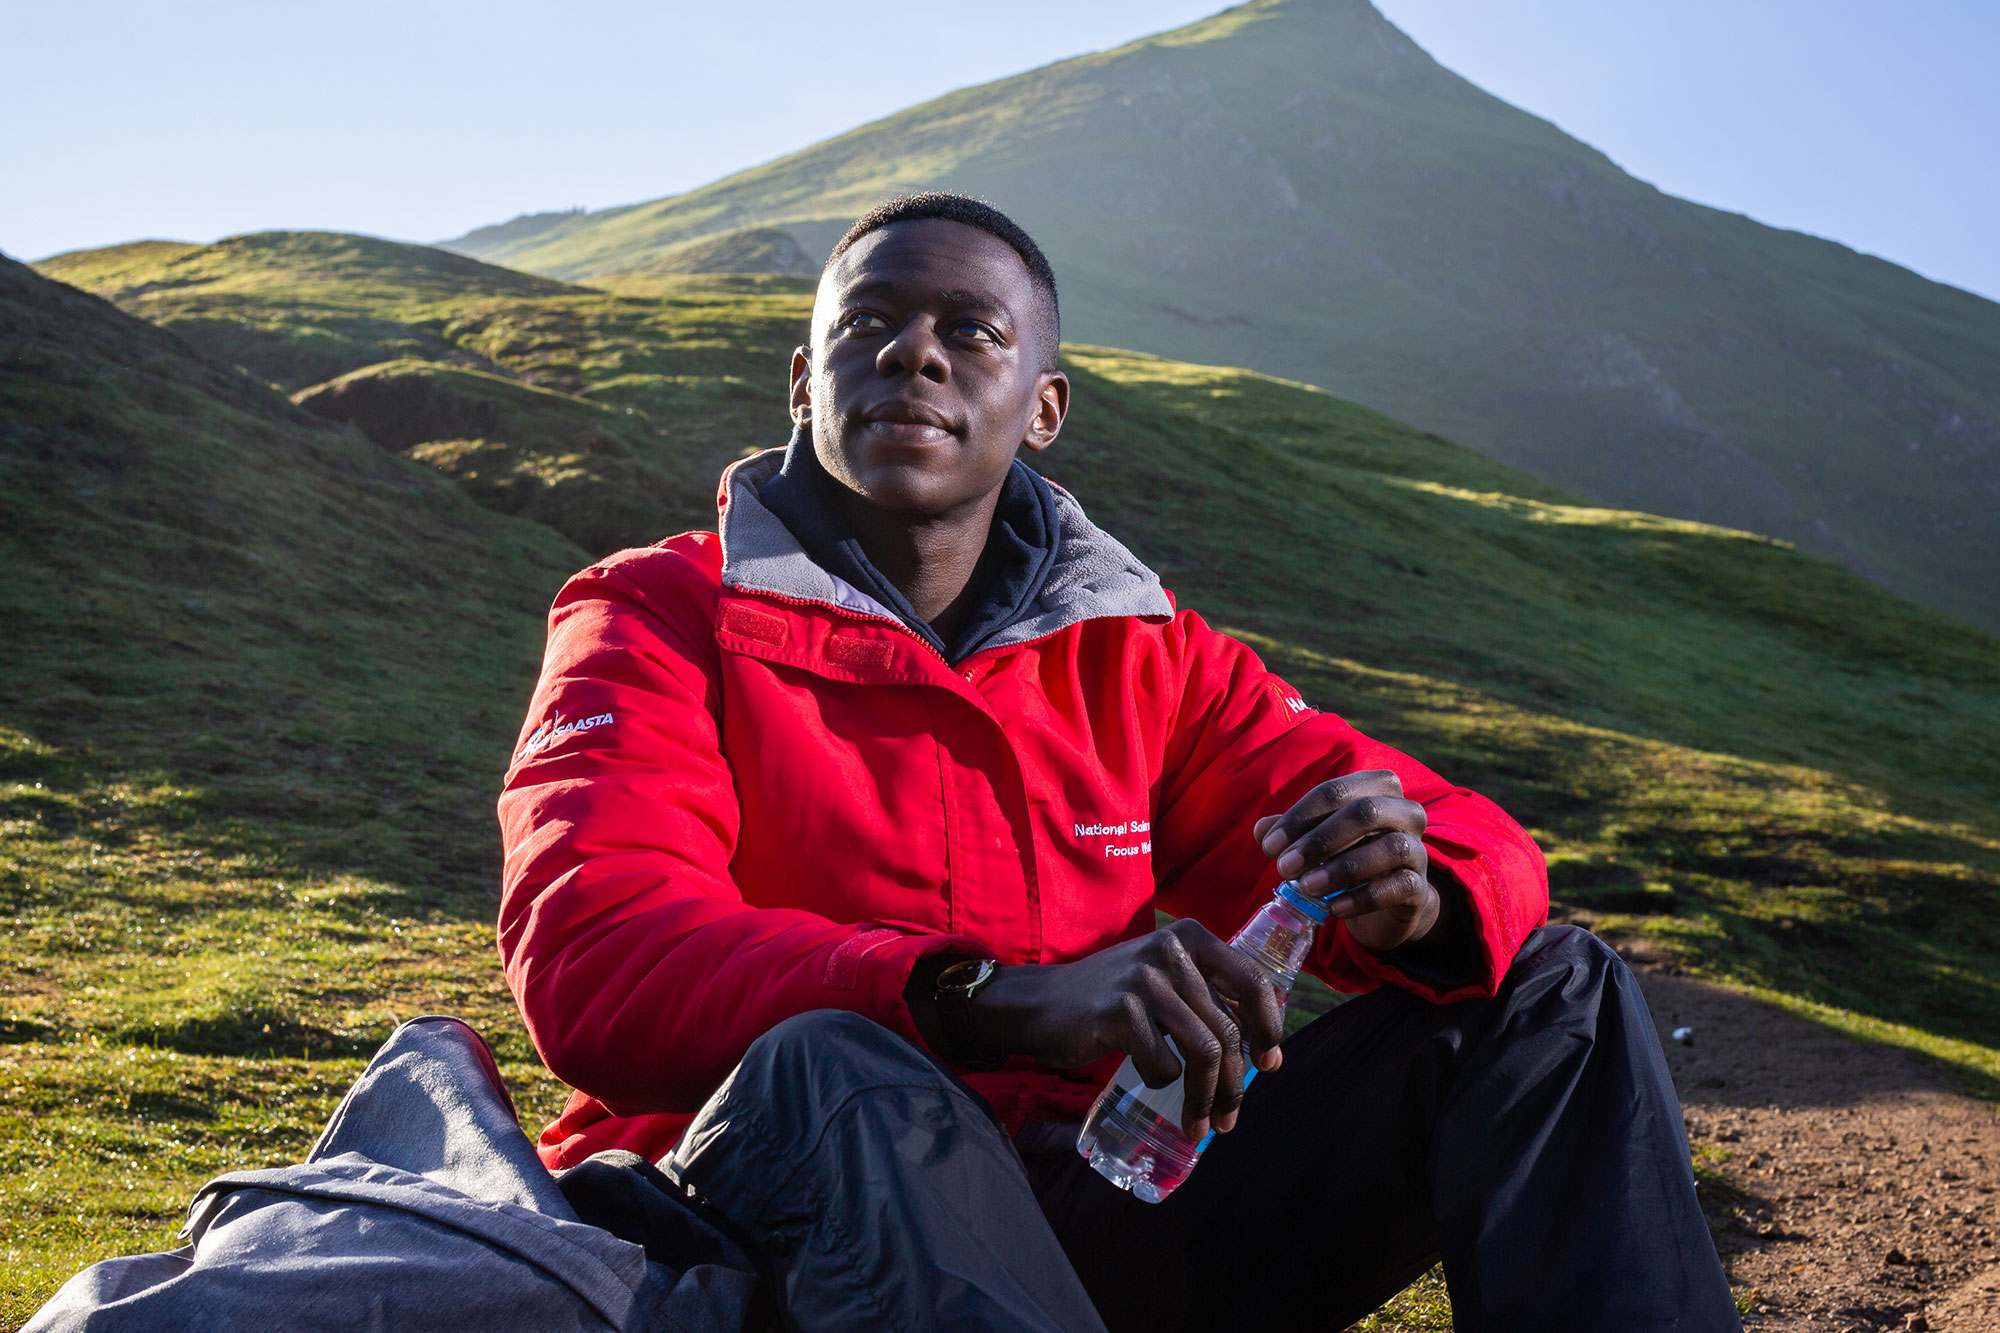 Student Sam sat on a hill during walk in Peak District